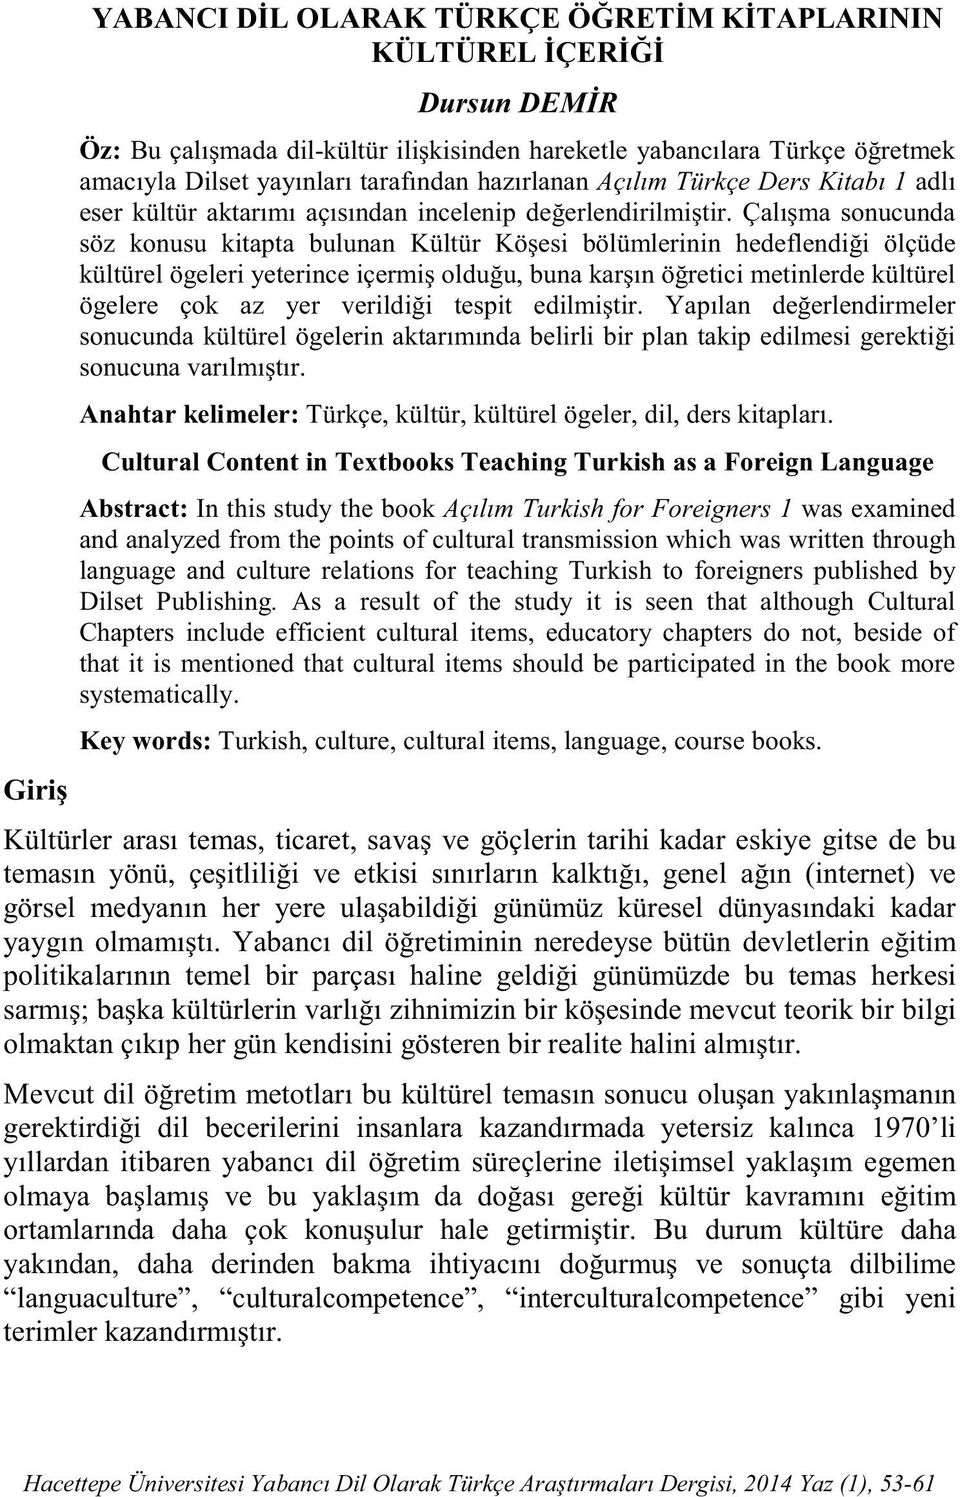 Foreigners 1 was examined and analyzed from the points of cultural transmission which was written through language and culture relations for teaching Turkish to foreigners published by Dilset